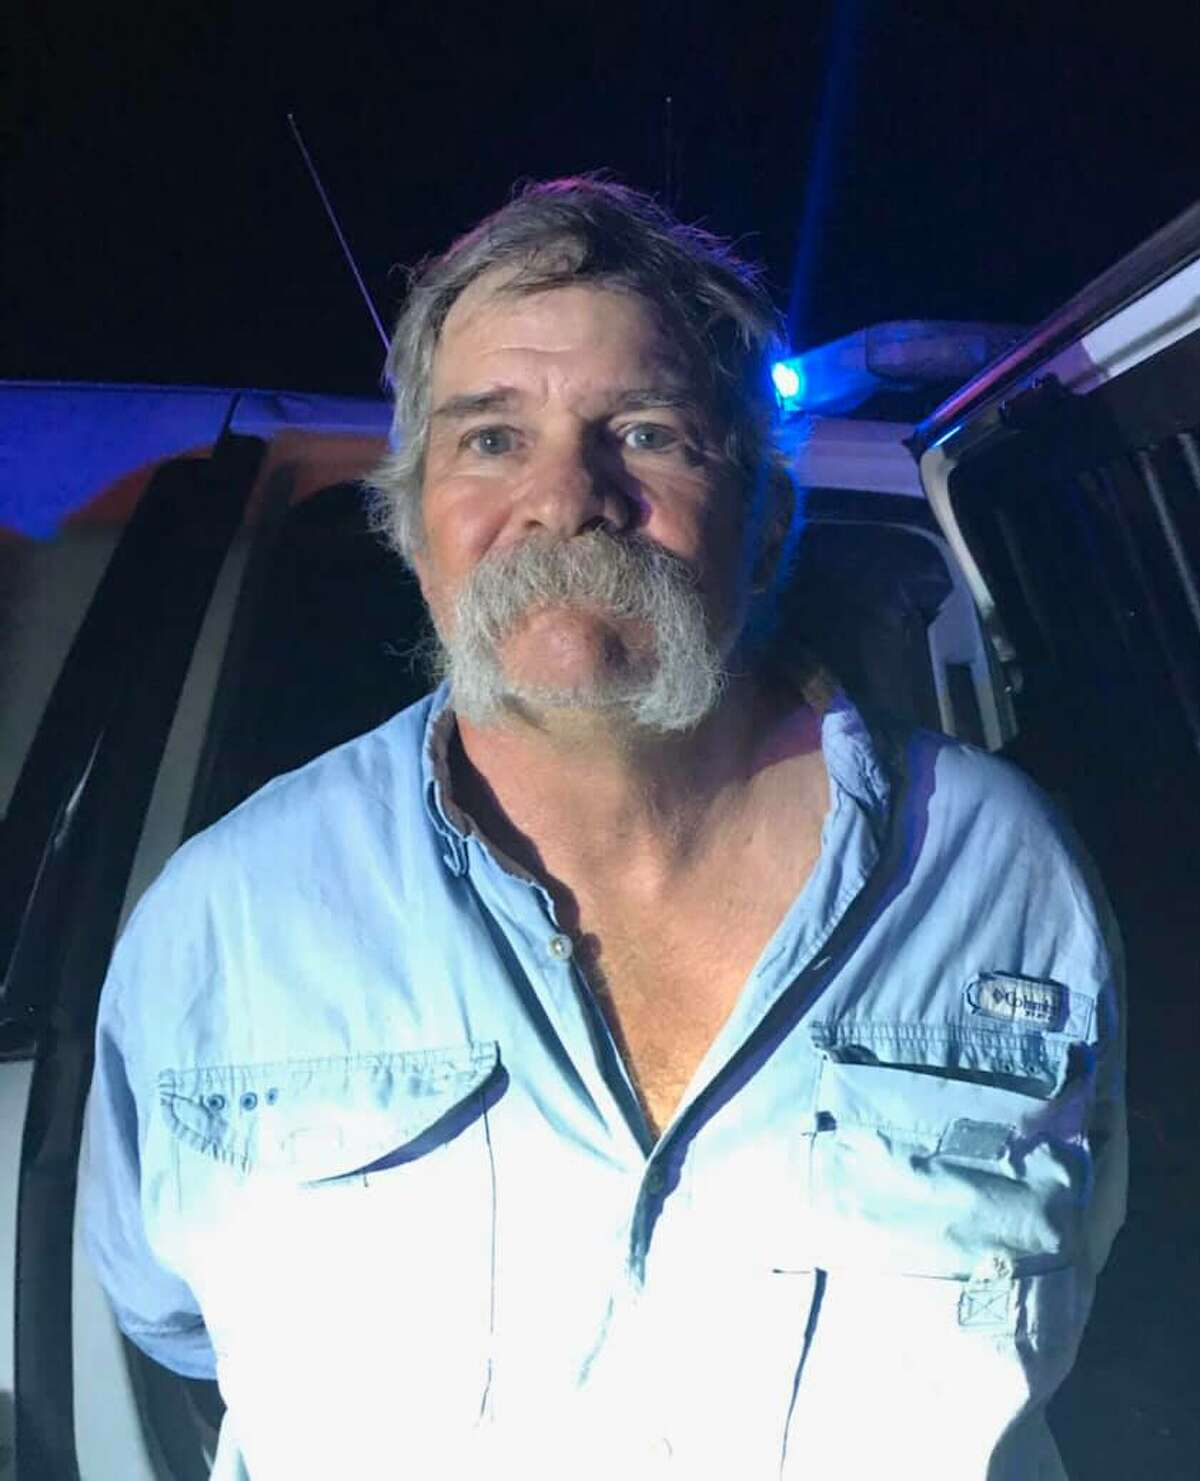 William Blankenship, 59, was charged with murder for his alleged involvement in the death of Josh Fowler on Dec. 8., according to an arrest affidavit.